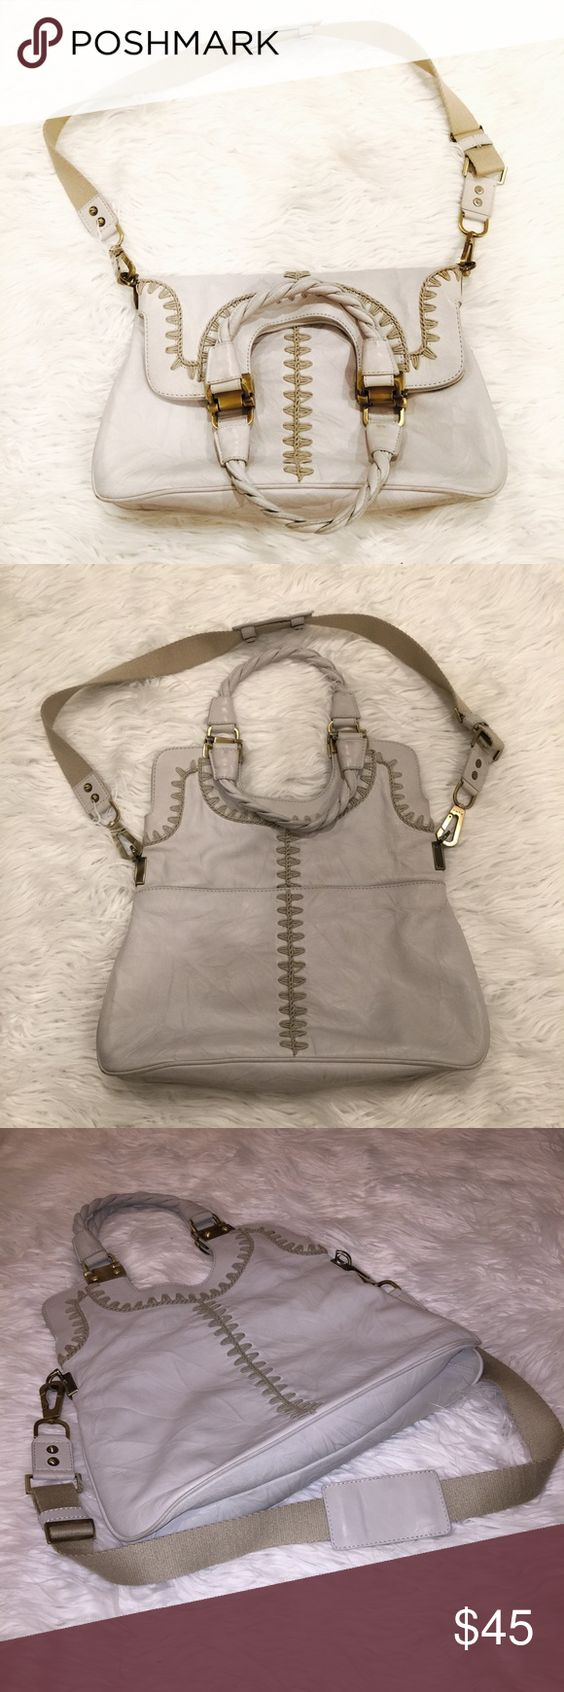 ✨Big Satchel✨ Worn many times. Kind of biege/gray. This bag has a few stains here and there, as well as some fading in the hardware. The leather has no rips of tears, just stains. I've never tried to clean this bag. There are many compartments and can be worn in a variety of ways. It's a little heavy due to the hardware, but it's so sturdy and has lasted me a long time. The strap is detachable. rafe Bags Satchels